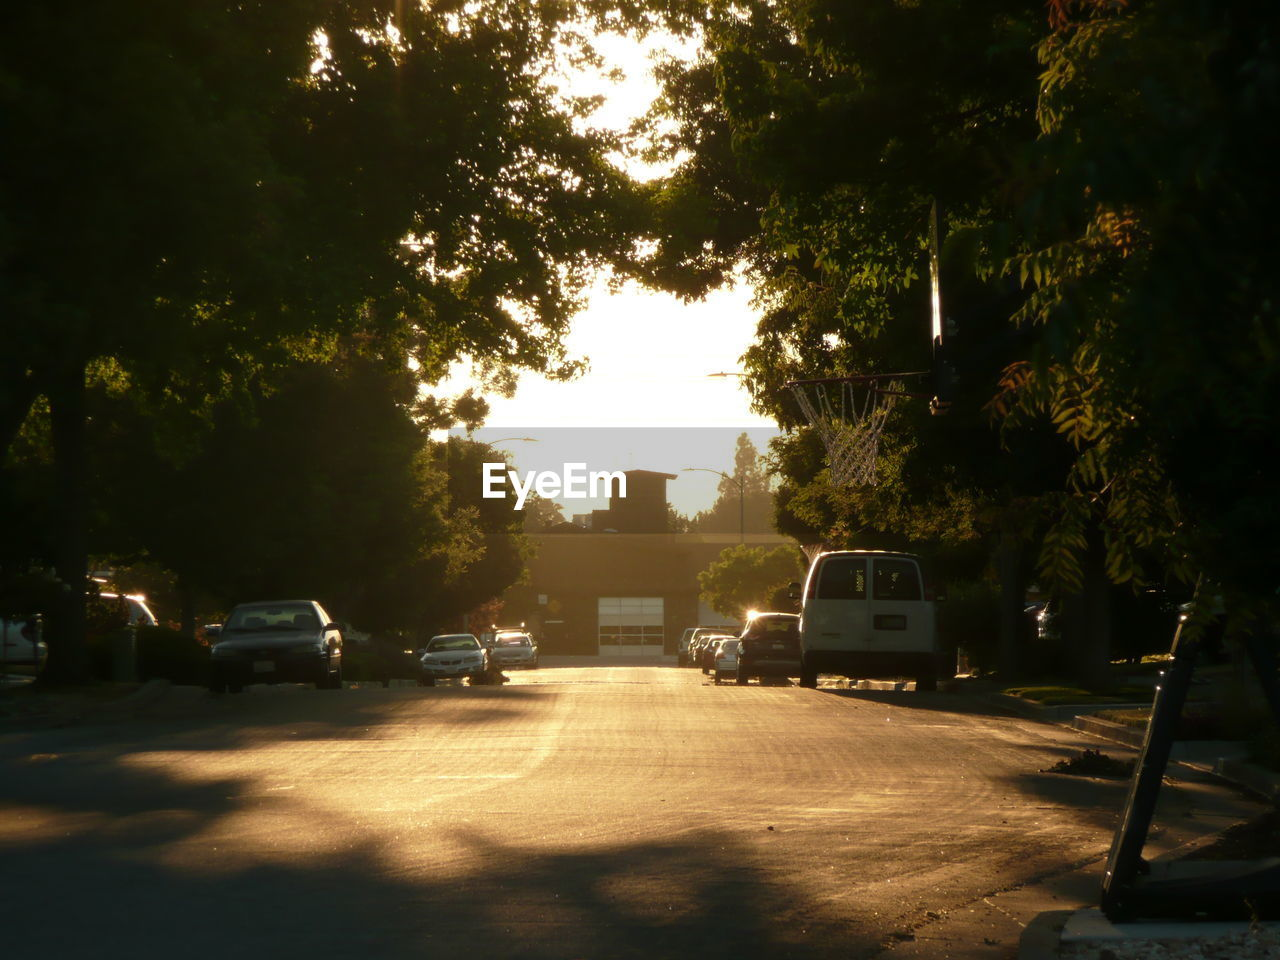 car, tree, street, transportation, road, land vehicle, sunlight, outdoors, no people, sky, city, day, nature